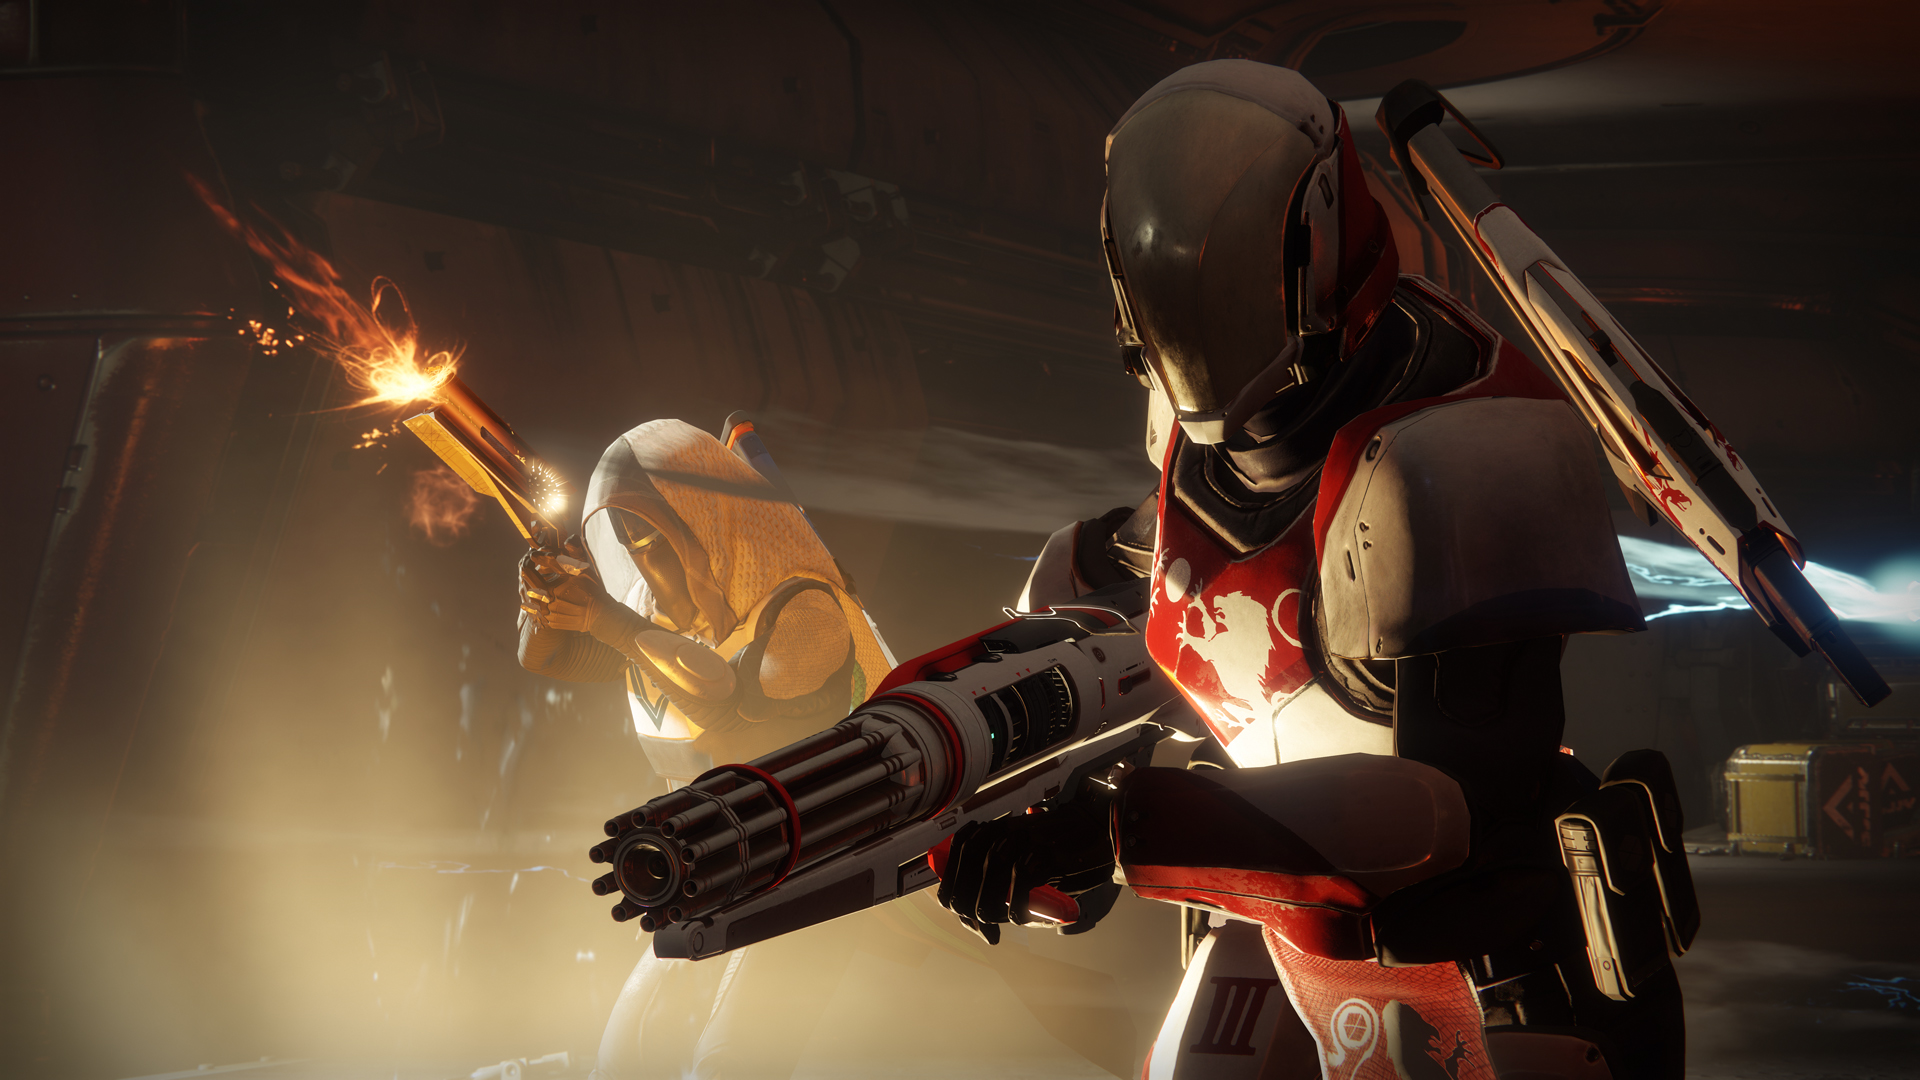 Destiny 2 (PS4) Review - Shooting and Looting Without the Traveler's